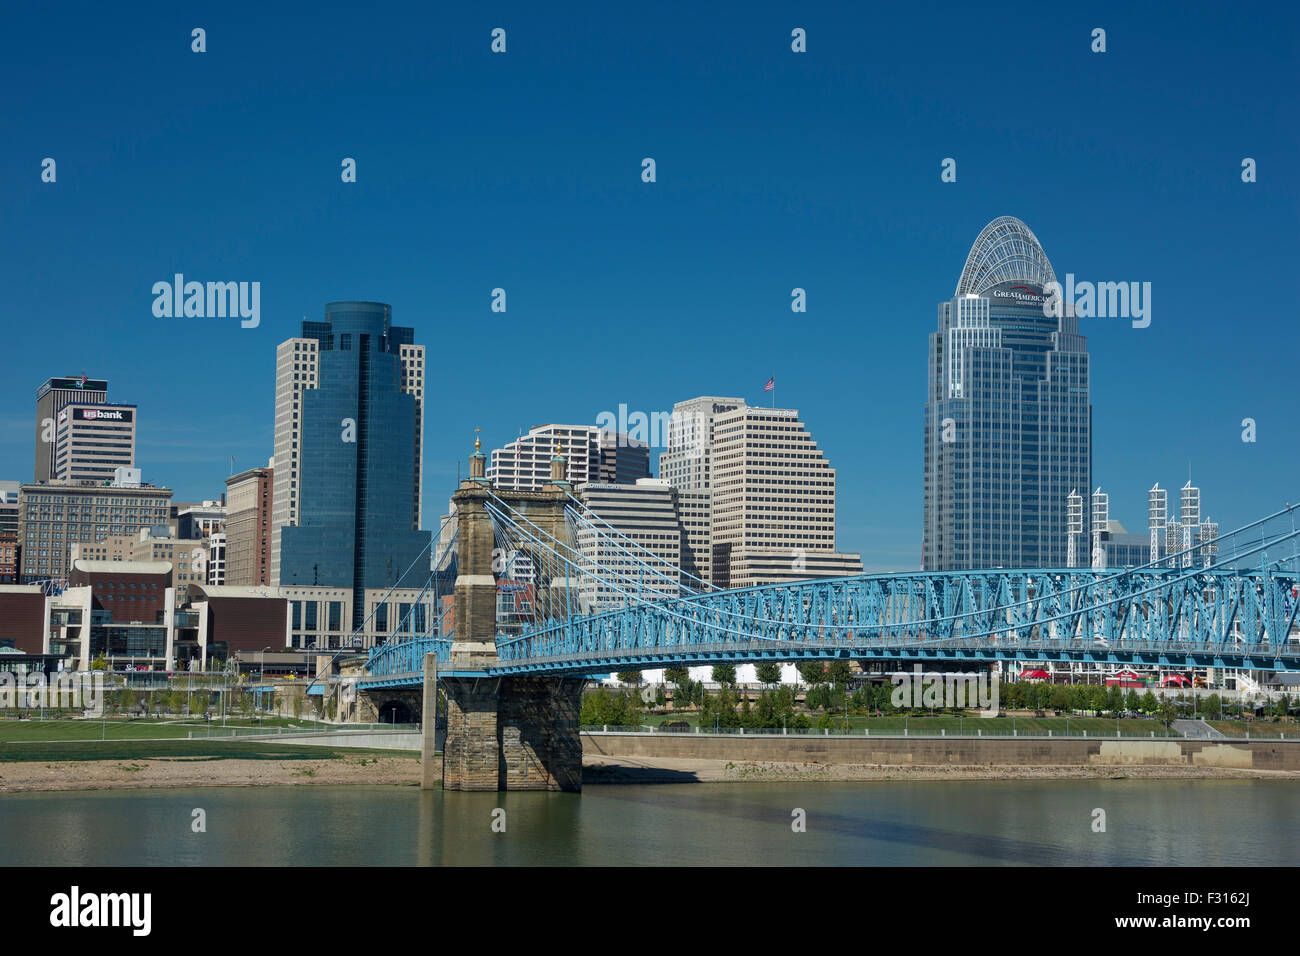 ROEBLING SUSPENSION BRIDGE OHIO RIVER DOWNTOWN SKYLINE CINCINNATI OHIO USA - Stock Image